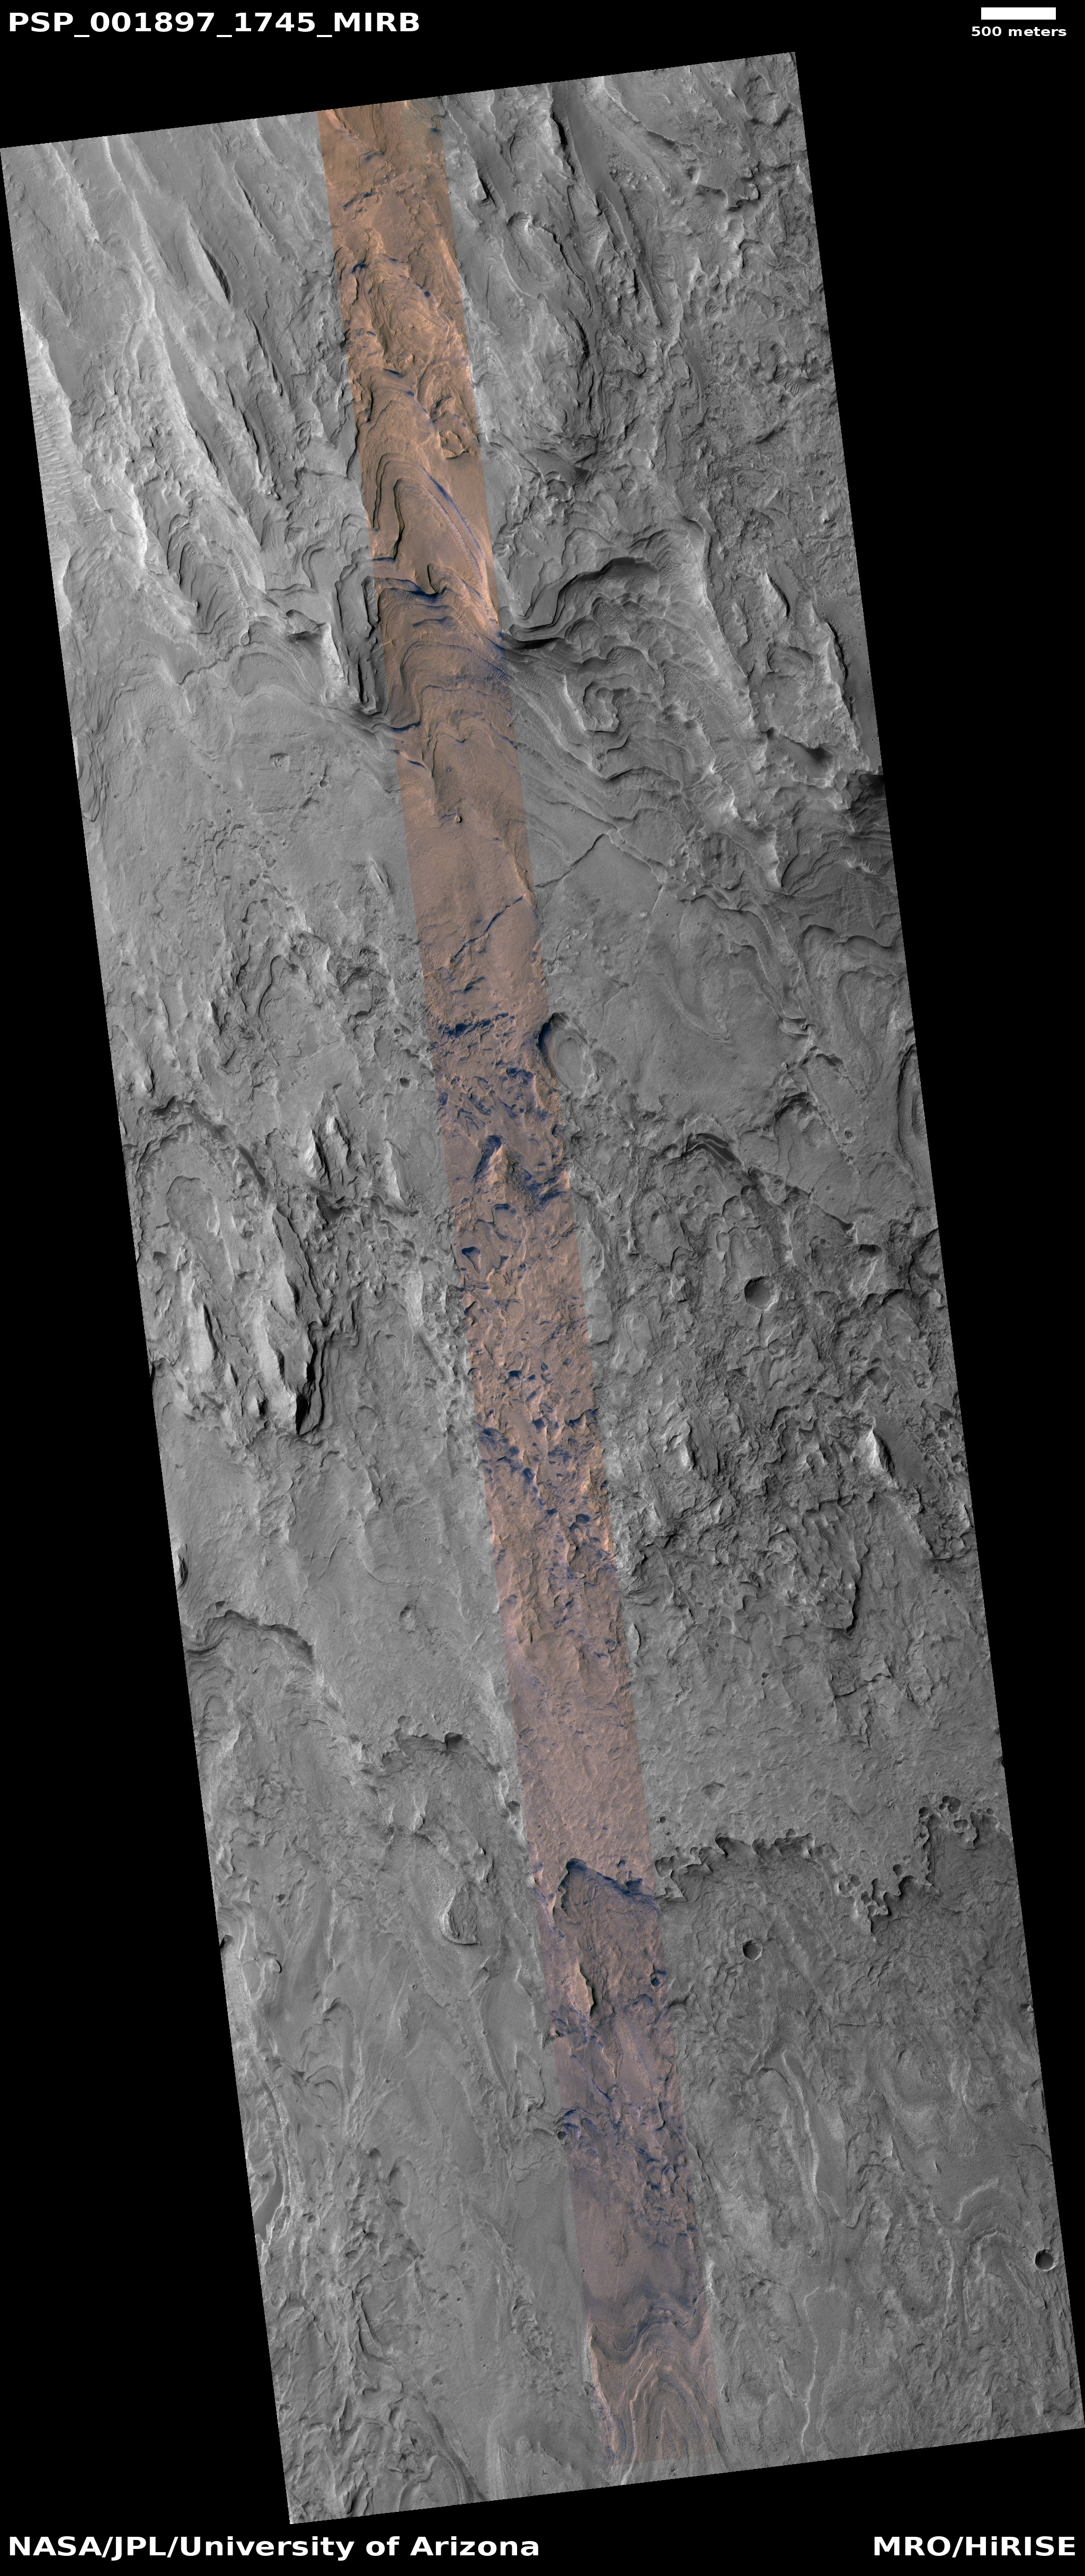 HiRISE   Layers in Gale Crater (PSP_001897_1745)